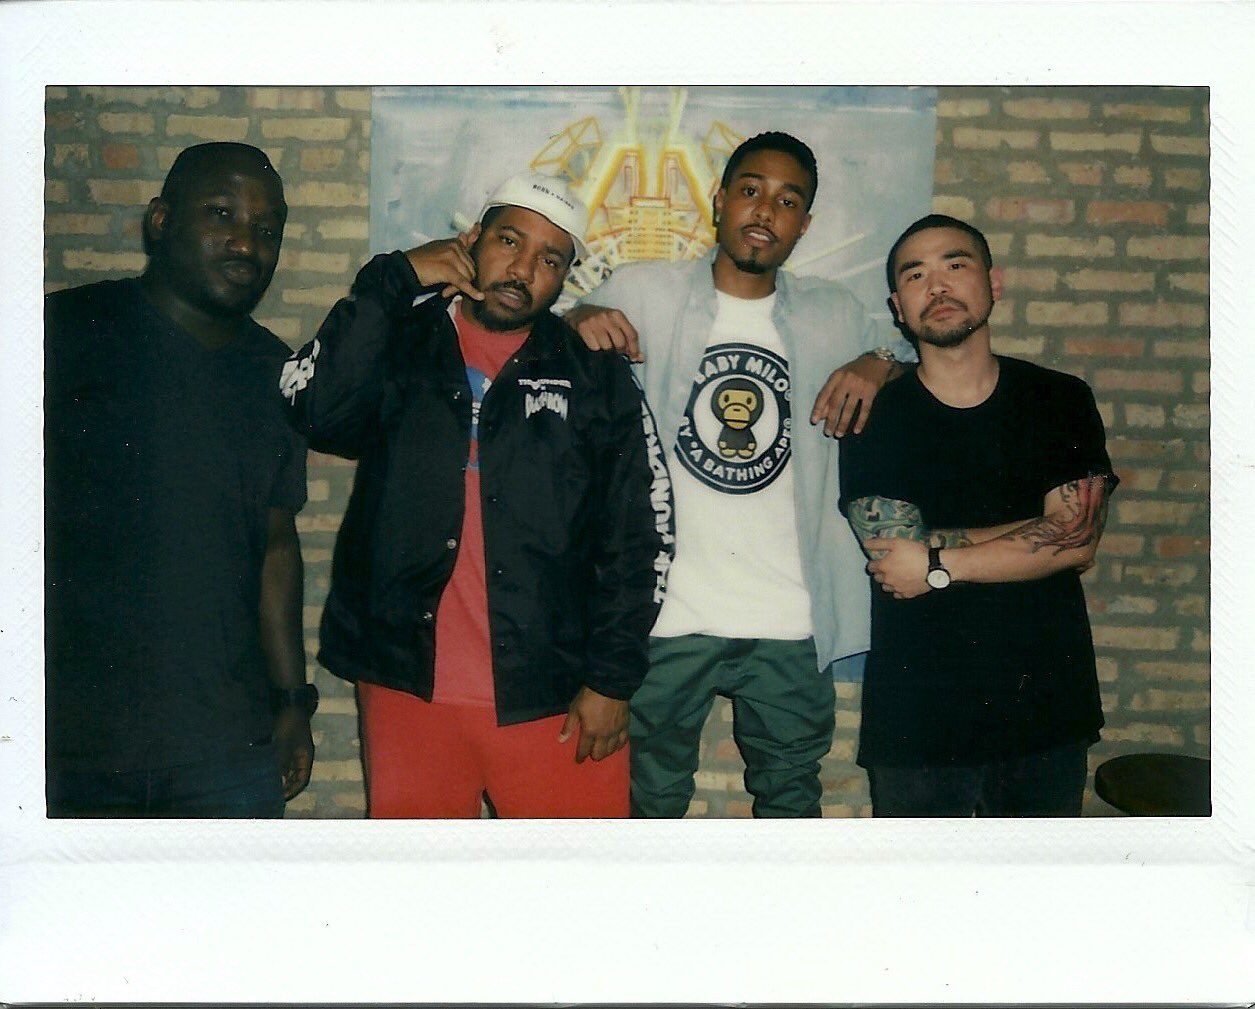 https://t.co/BMIt6twTk9  New @HandsomeRambler with @theCoolxKids   Cohosted and edited by @TonyTrimm https://t.co/XRwIIwVrsp